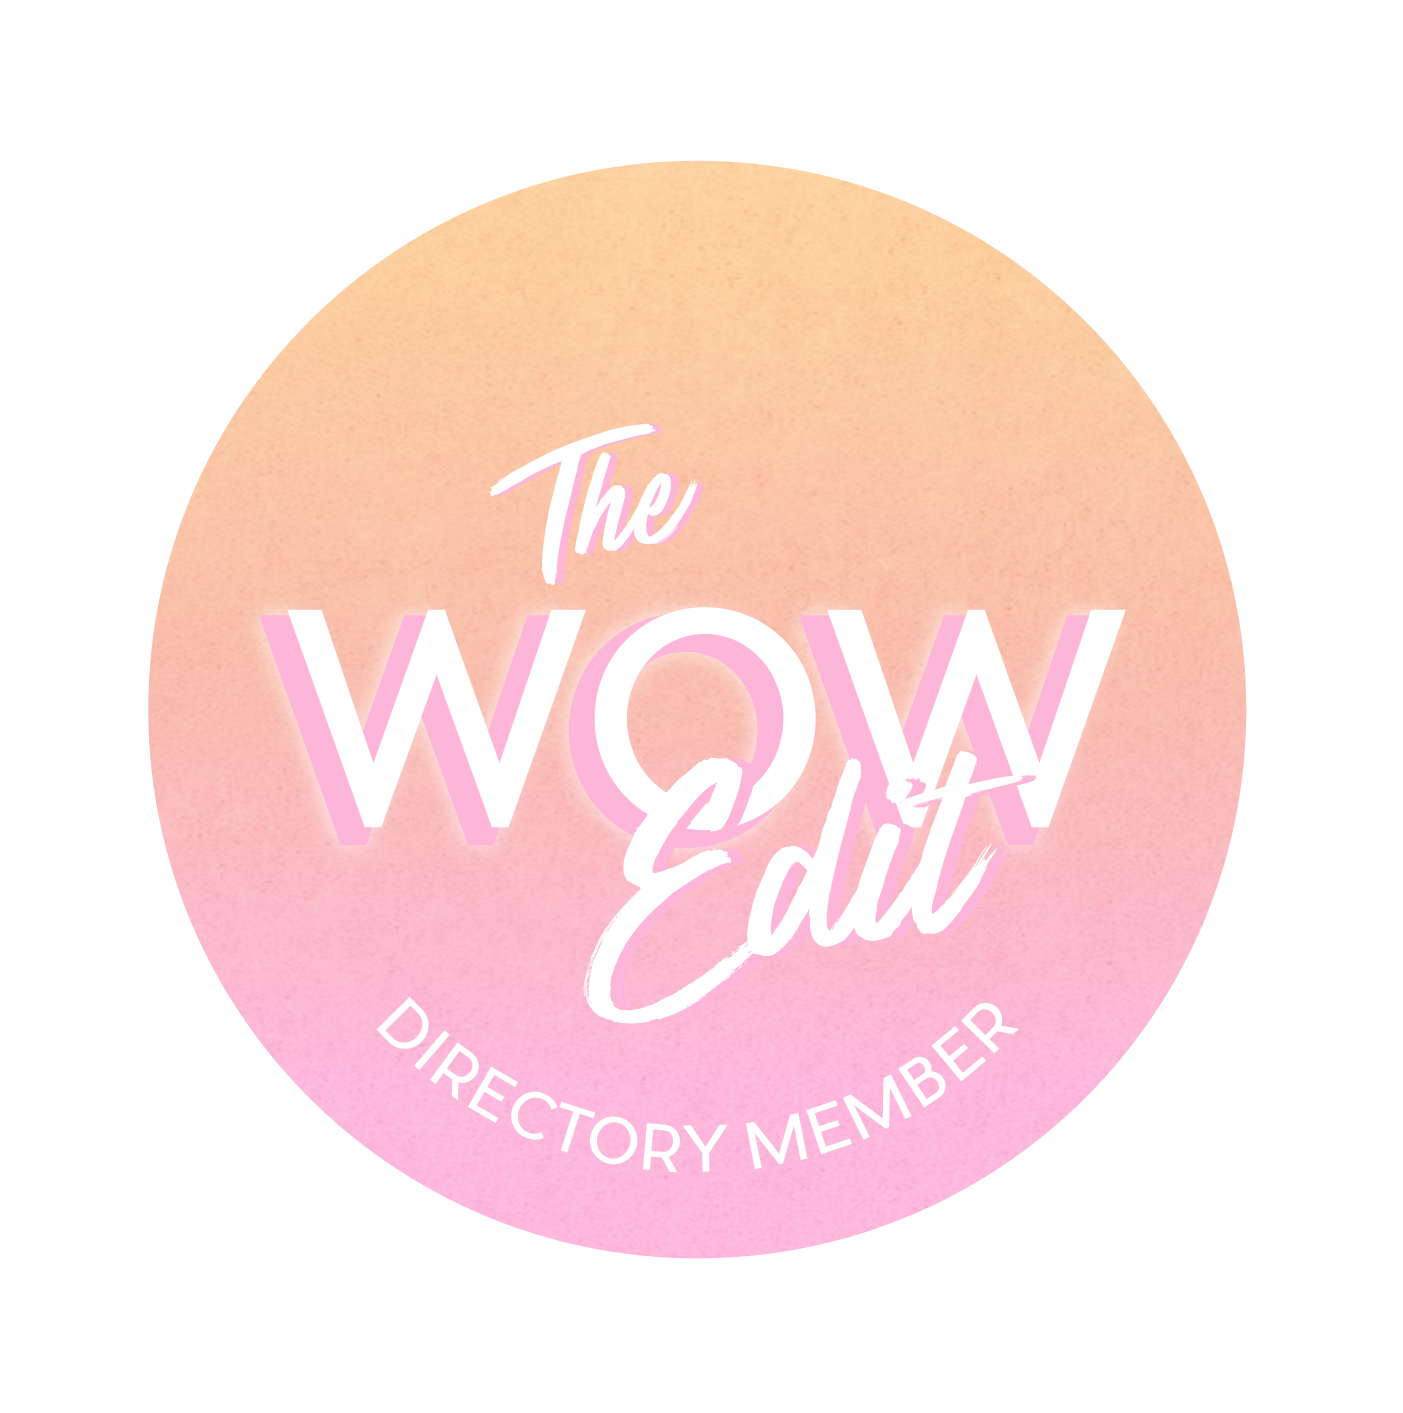 WOW EDIT MEMBER 72dpi FOR WEB.png